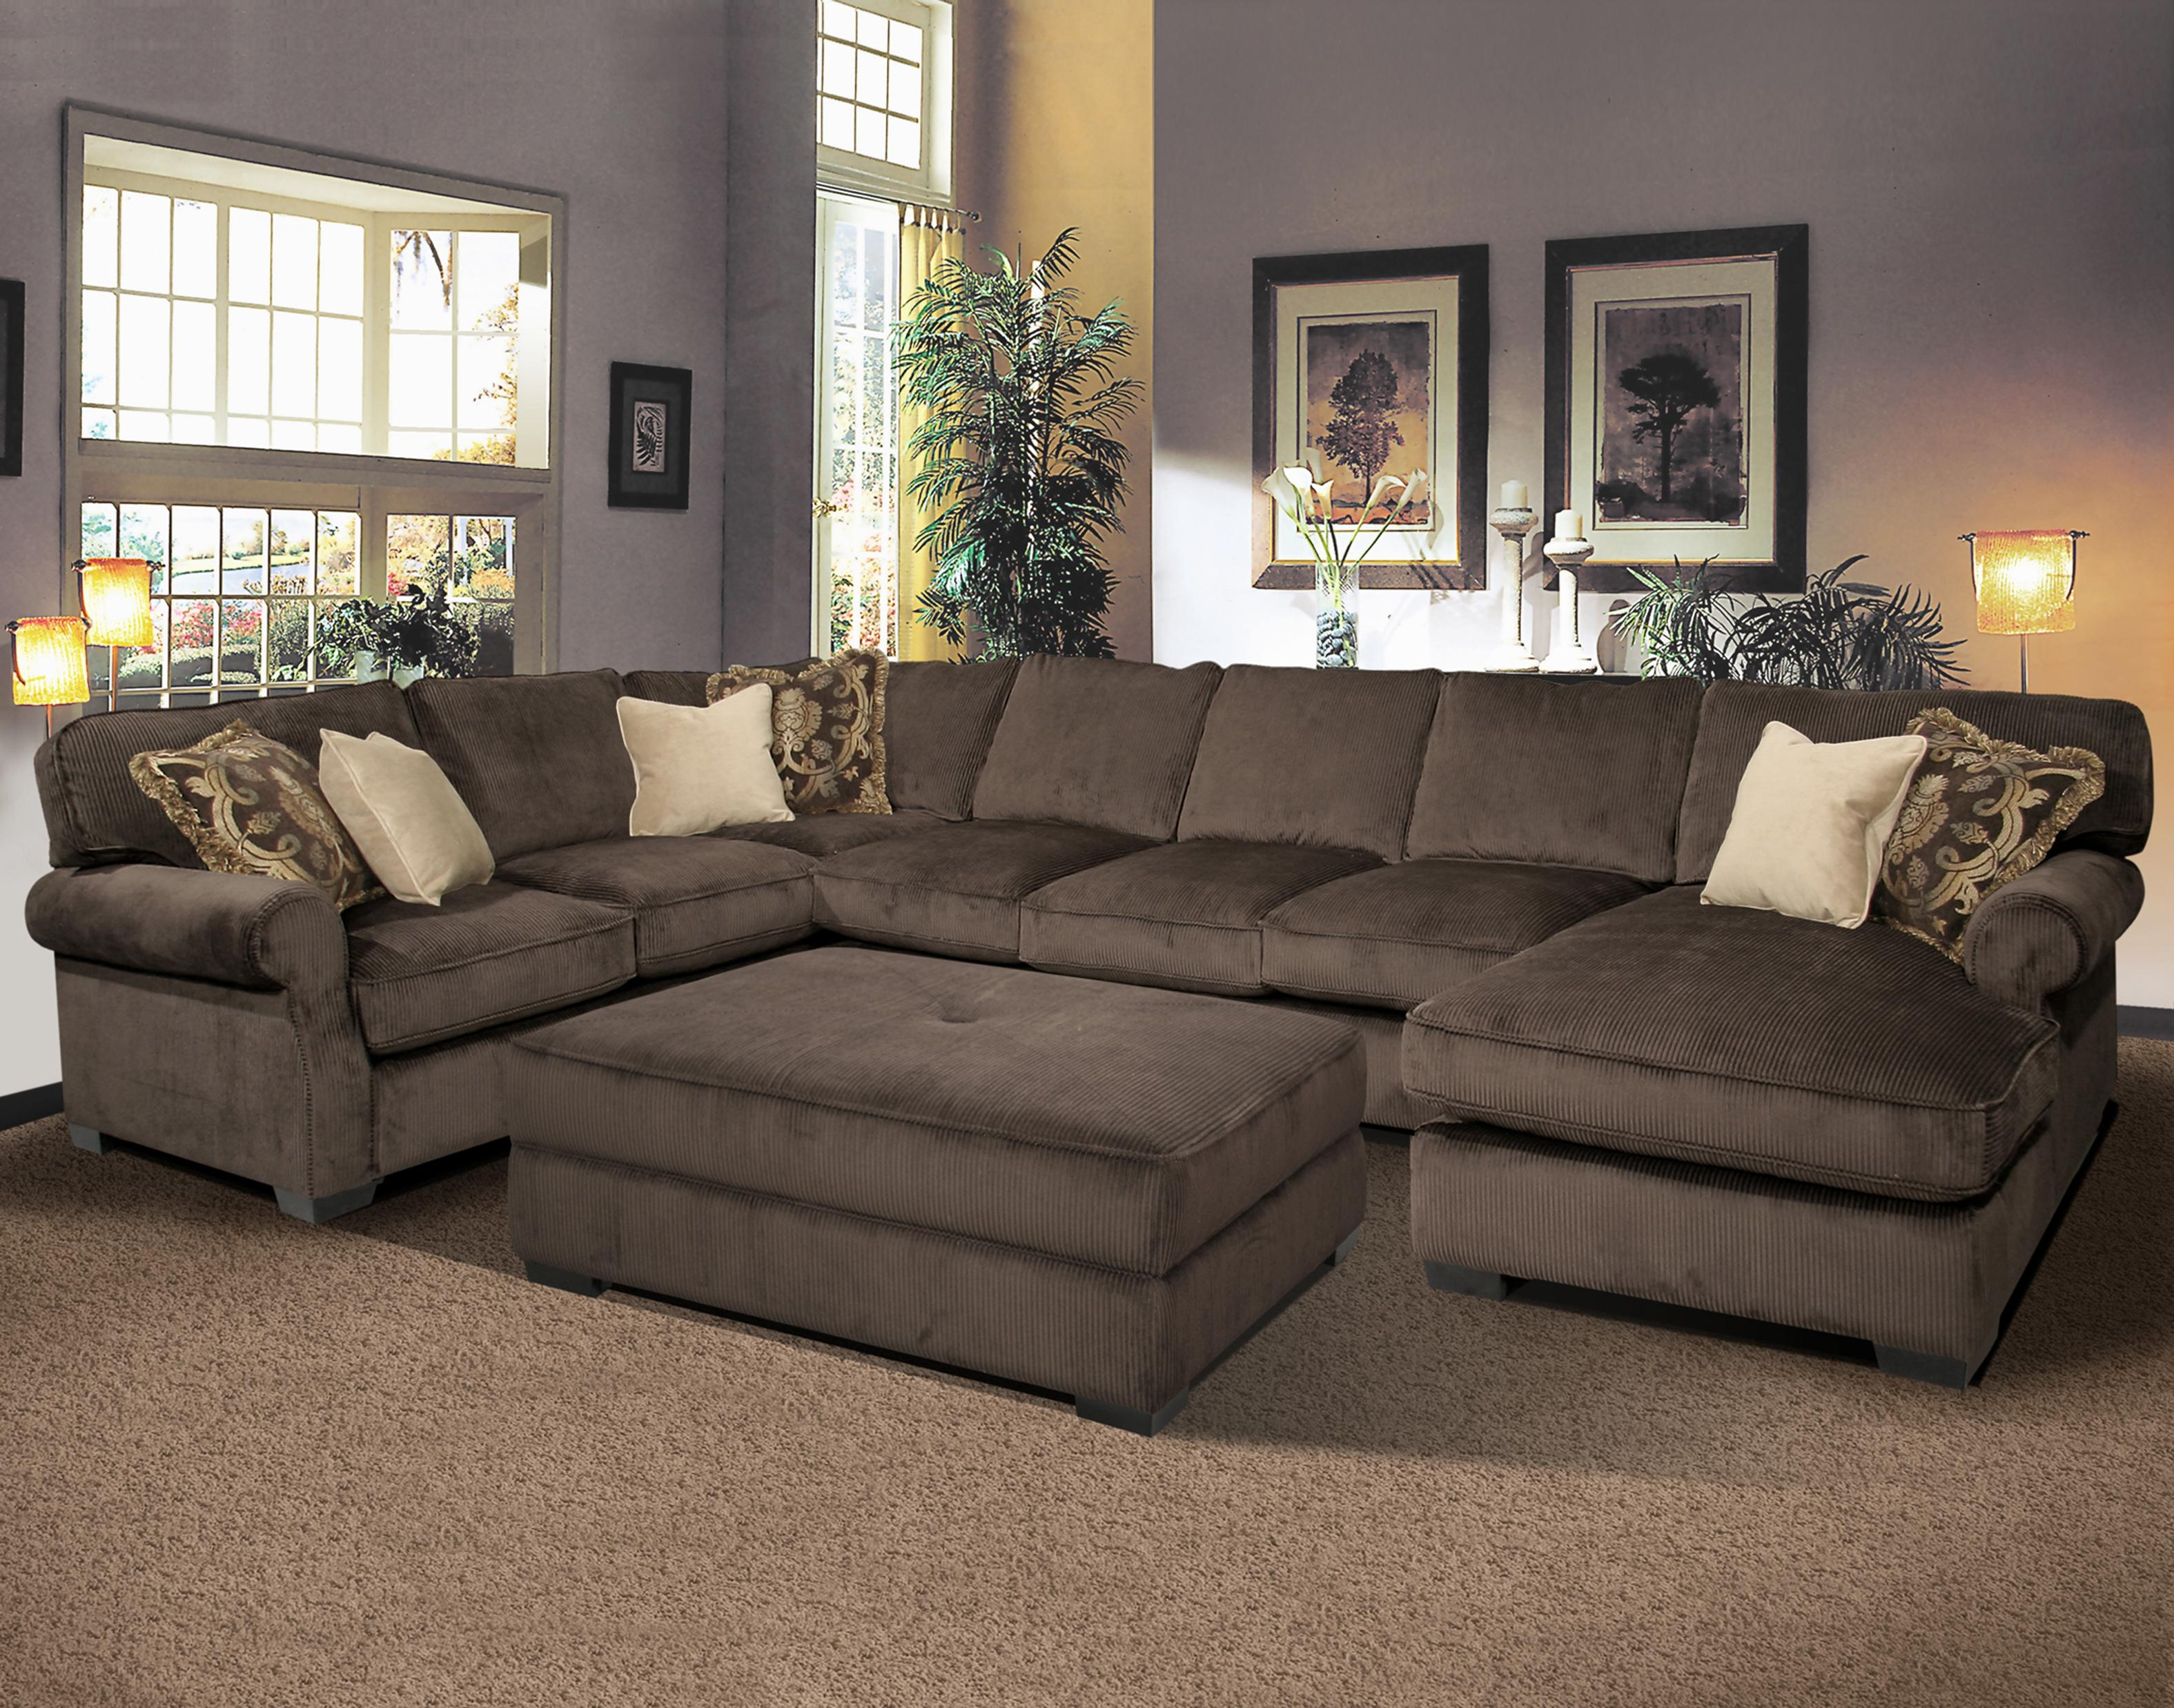 25 Best Ideas About Large Sectional Sofa On Pinterest Inside Extra Wide Sectional Sofas (#2 of 12)